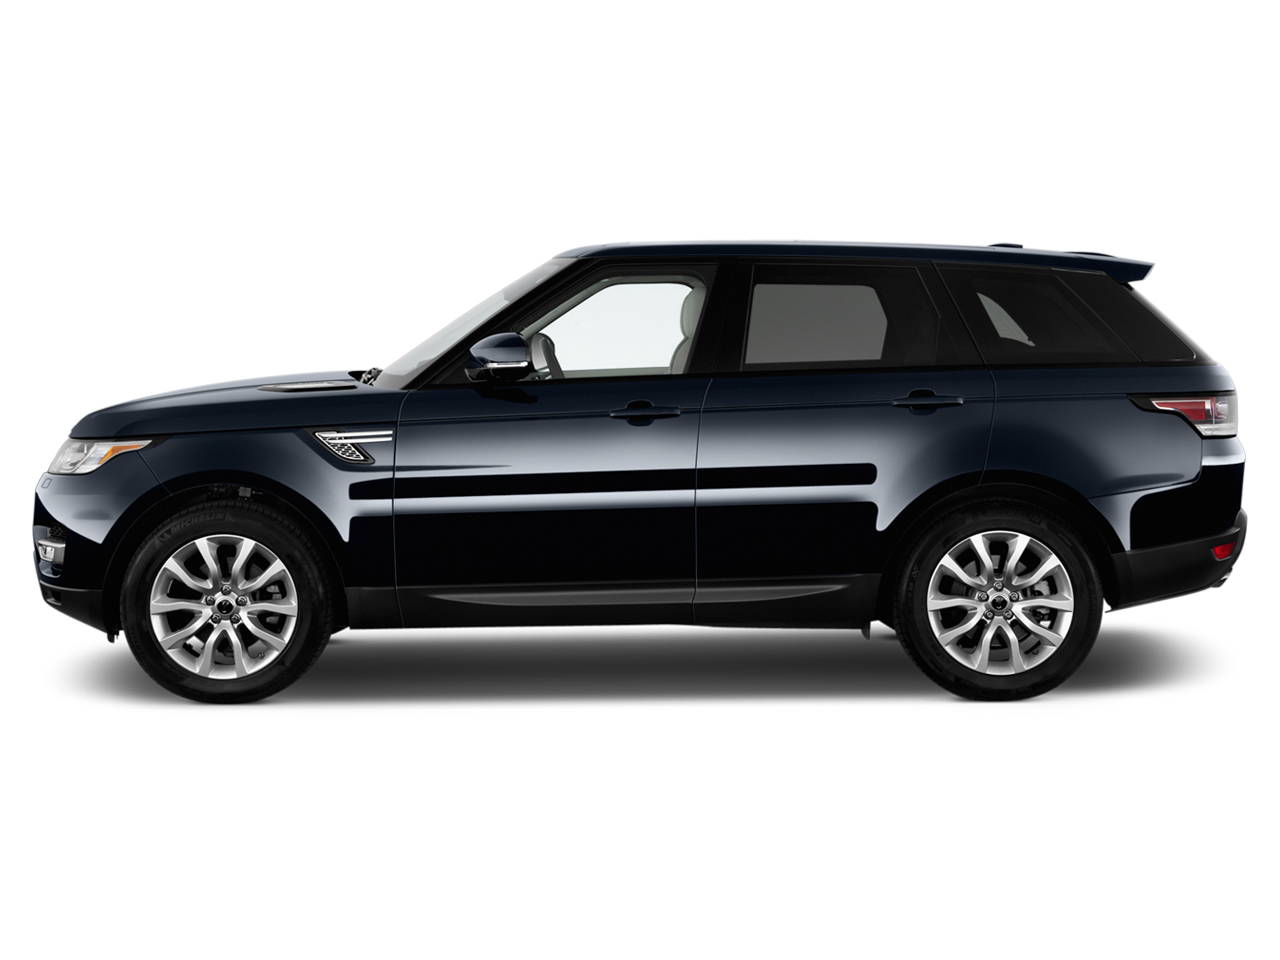 Miami Used Chevrolet >> New and Used Land Rover Range Rover Sport: Prices, Photos ...